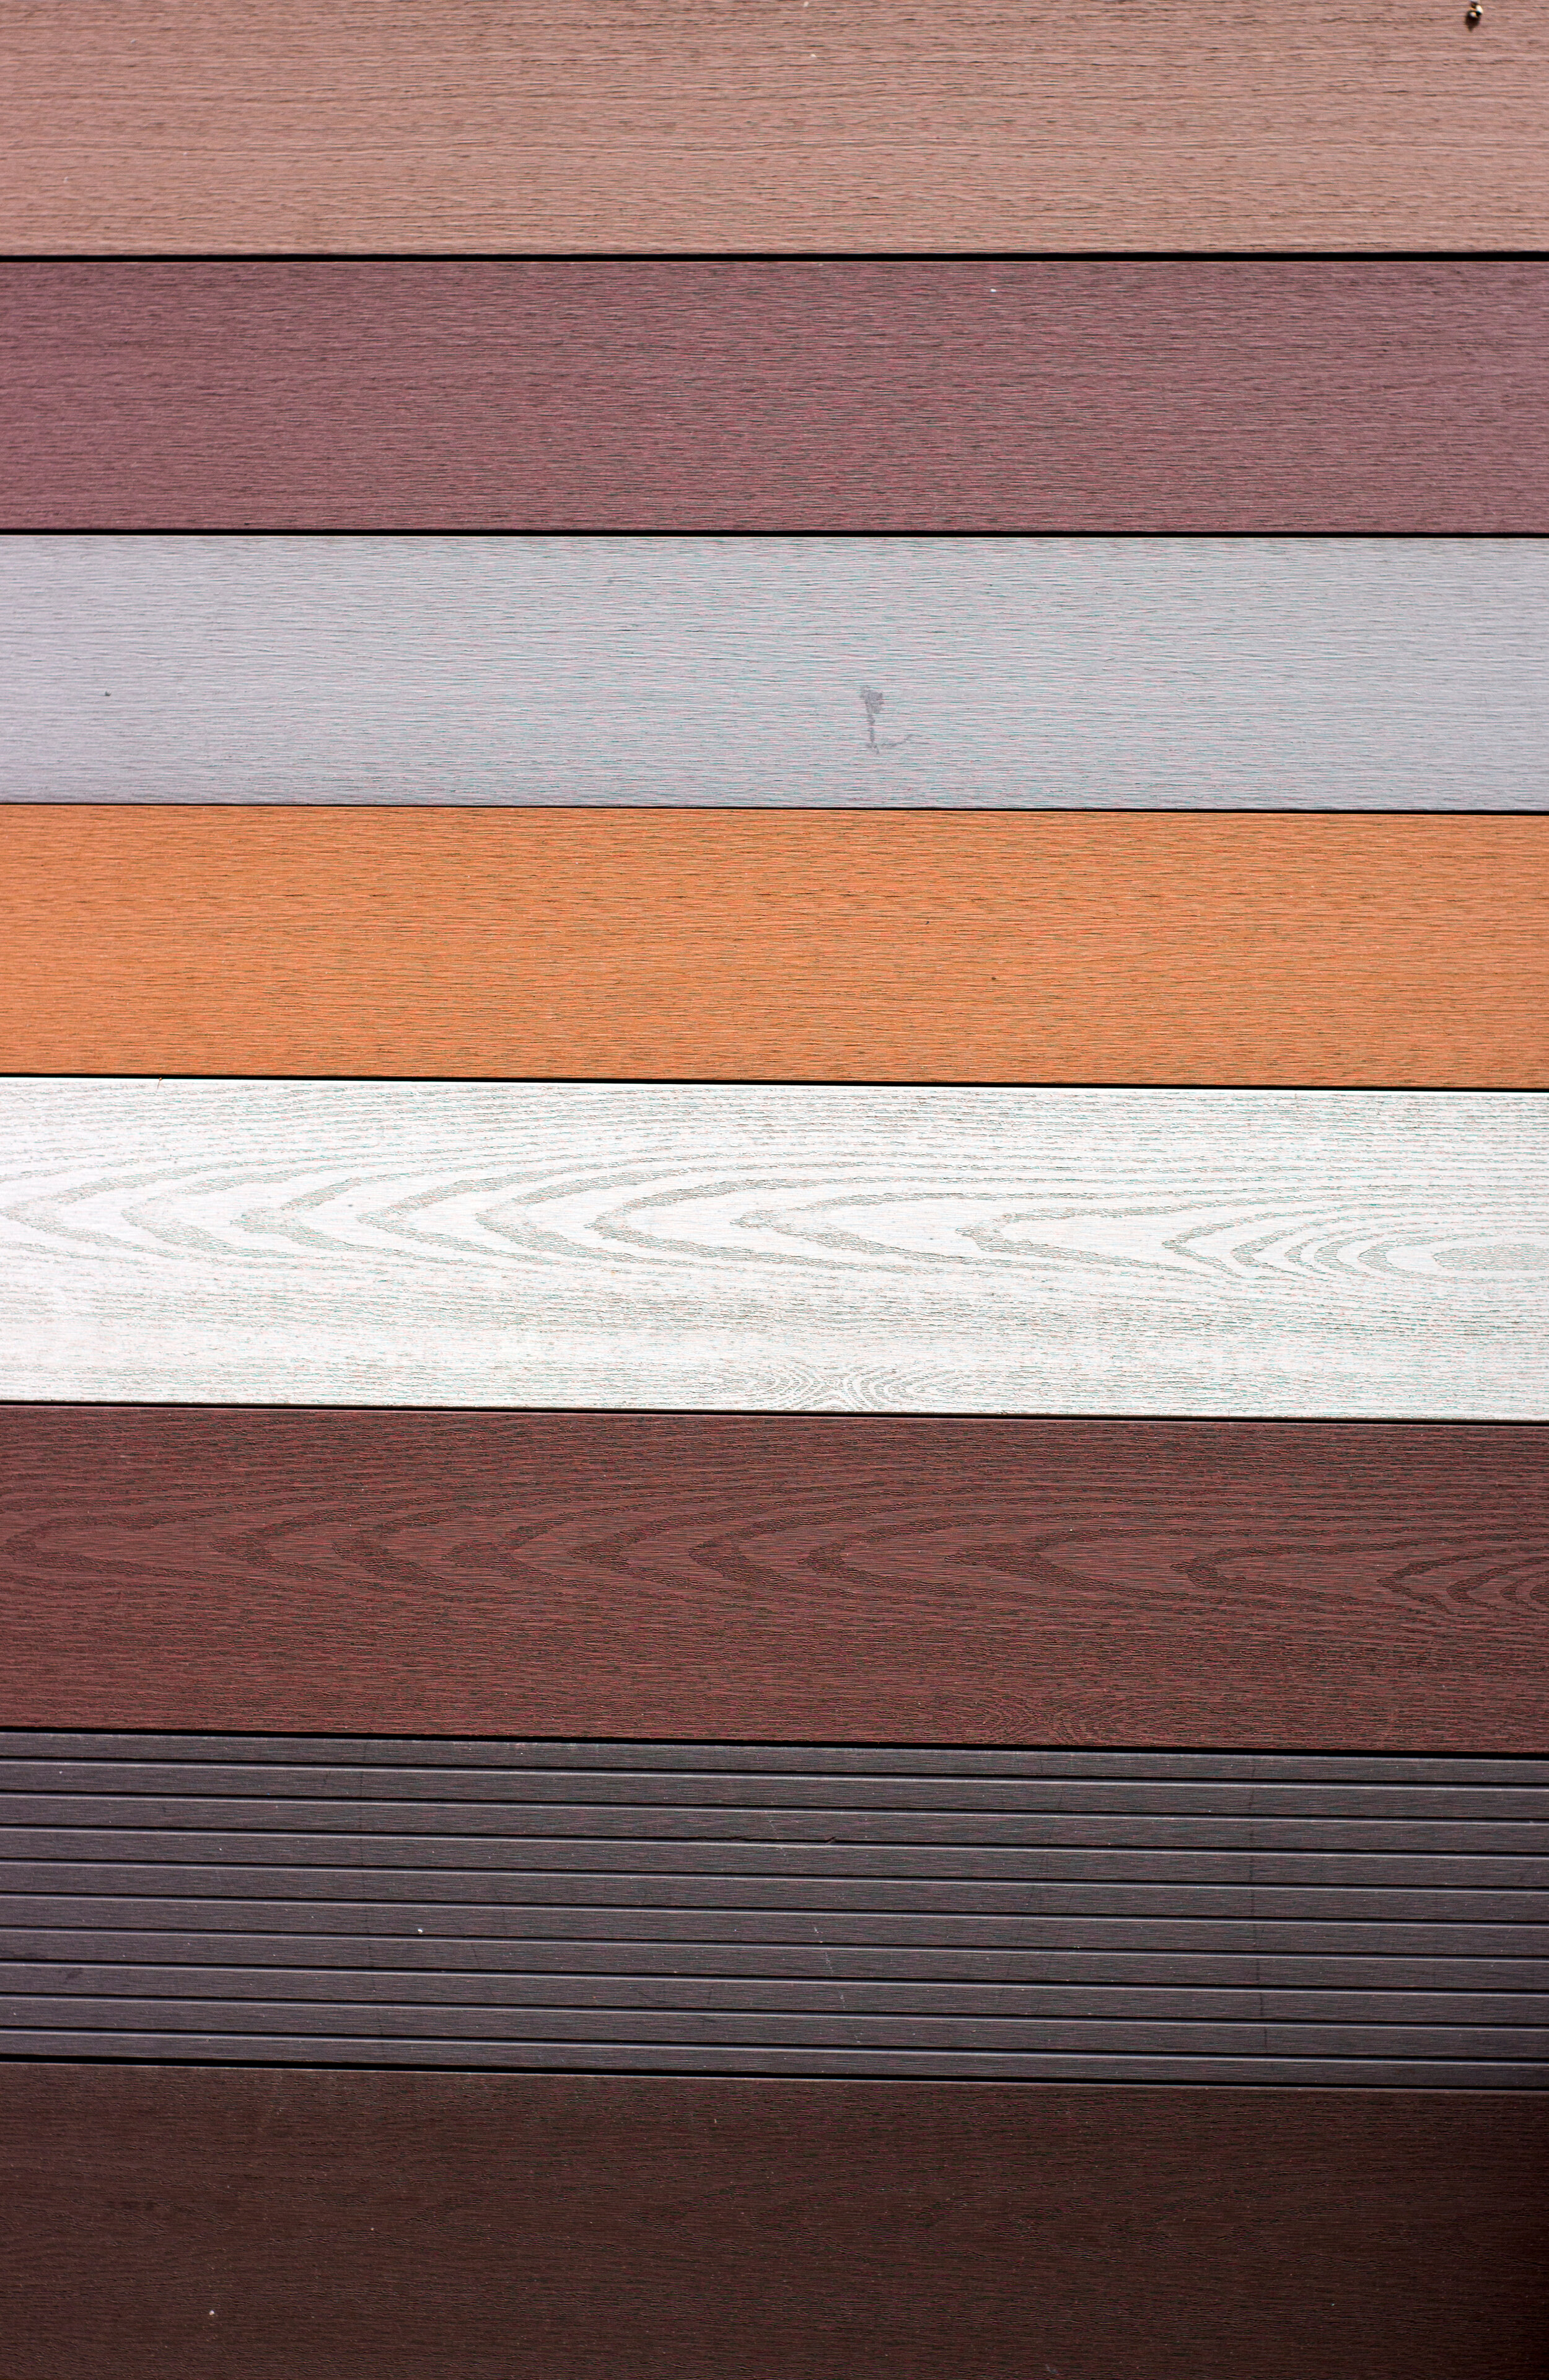 Vinyl Siding The Low Cost Of High Style Build With A Bang